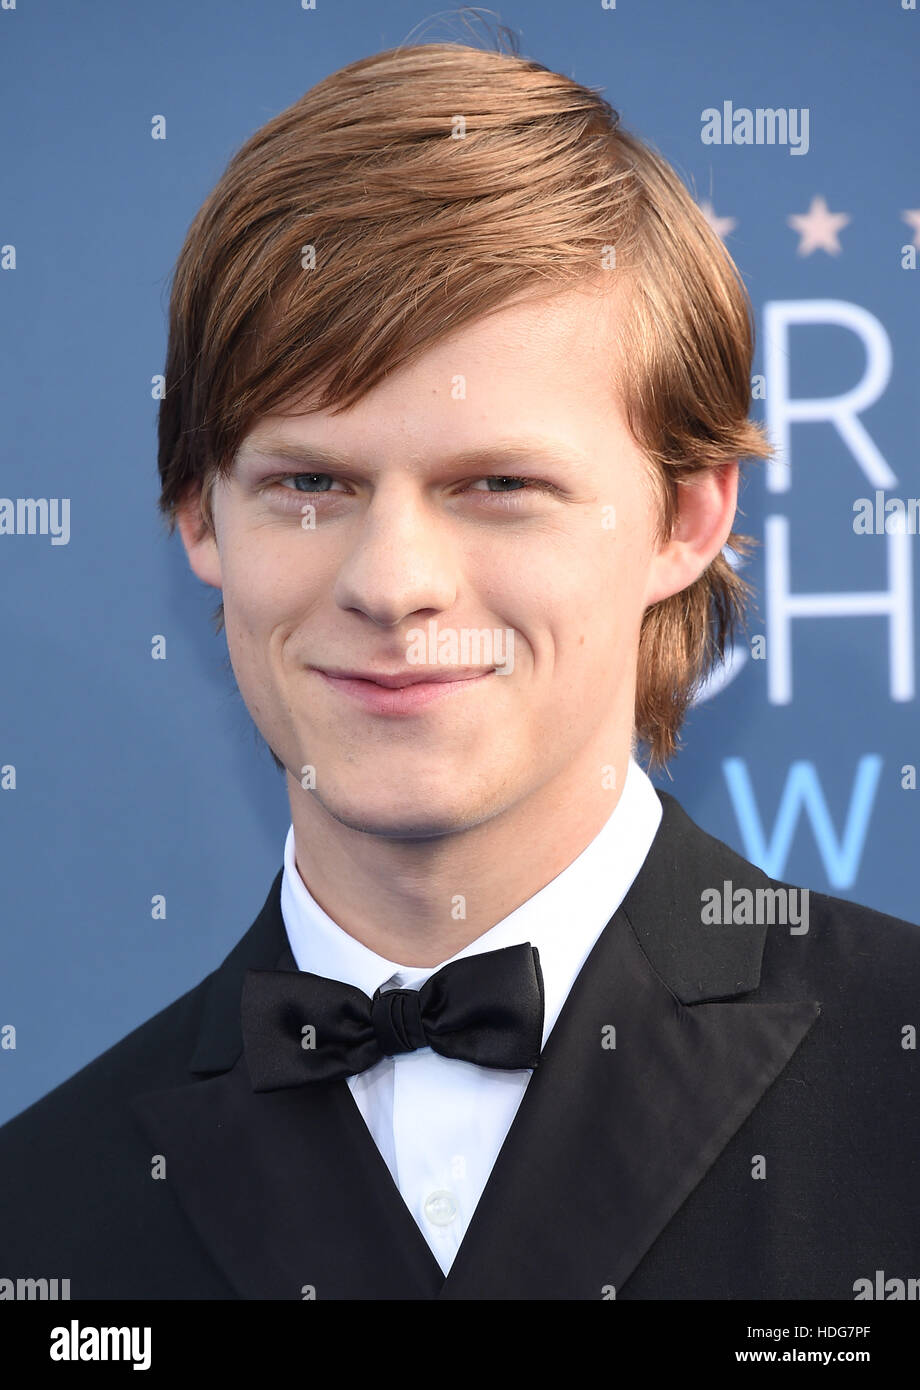 Santa Monica, California, USA. 11 dic, 2016. Lucas Hedges llega por la 22ª Anual de Critics' Choice Awards Imagen De Stock